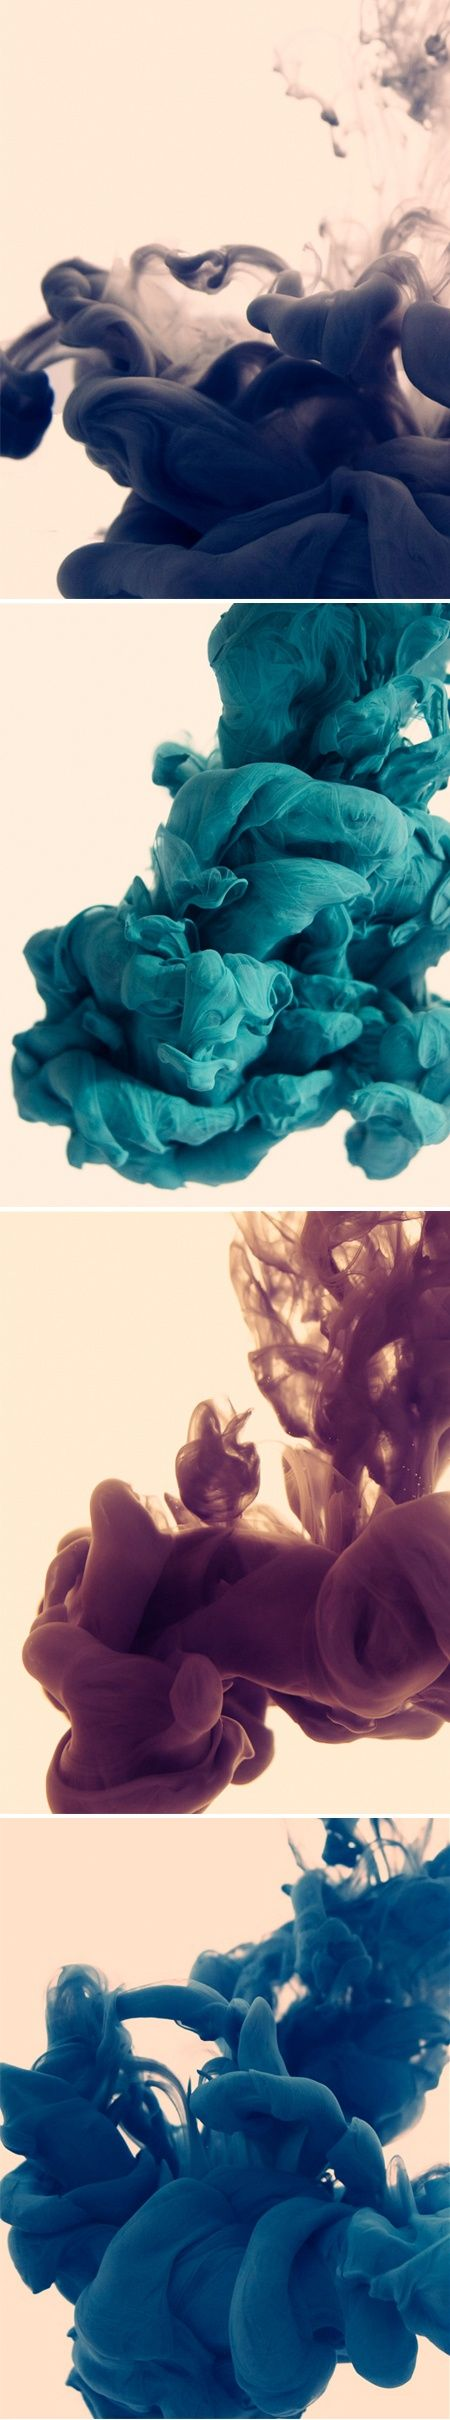 alberto seveso - ink in water.